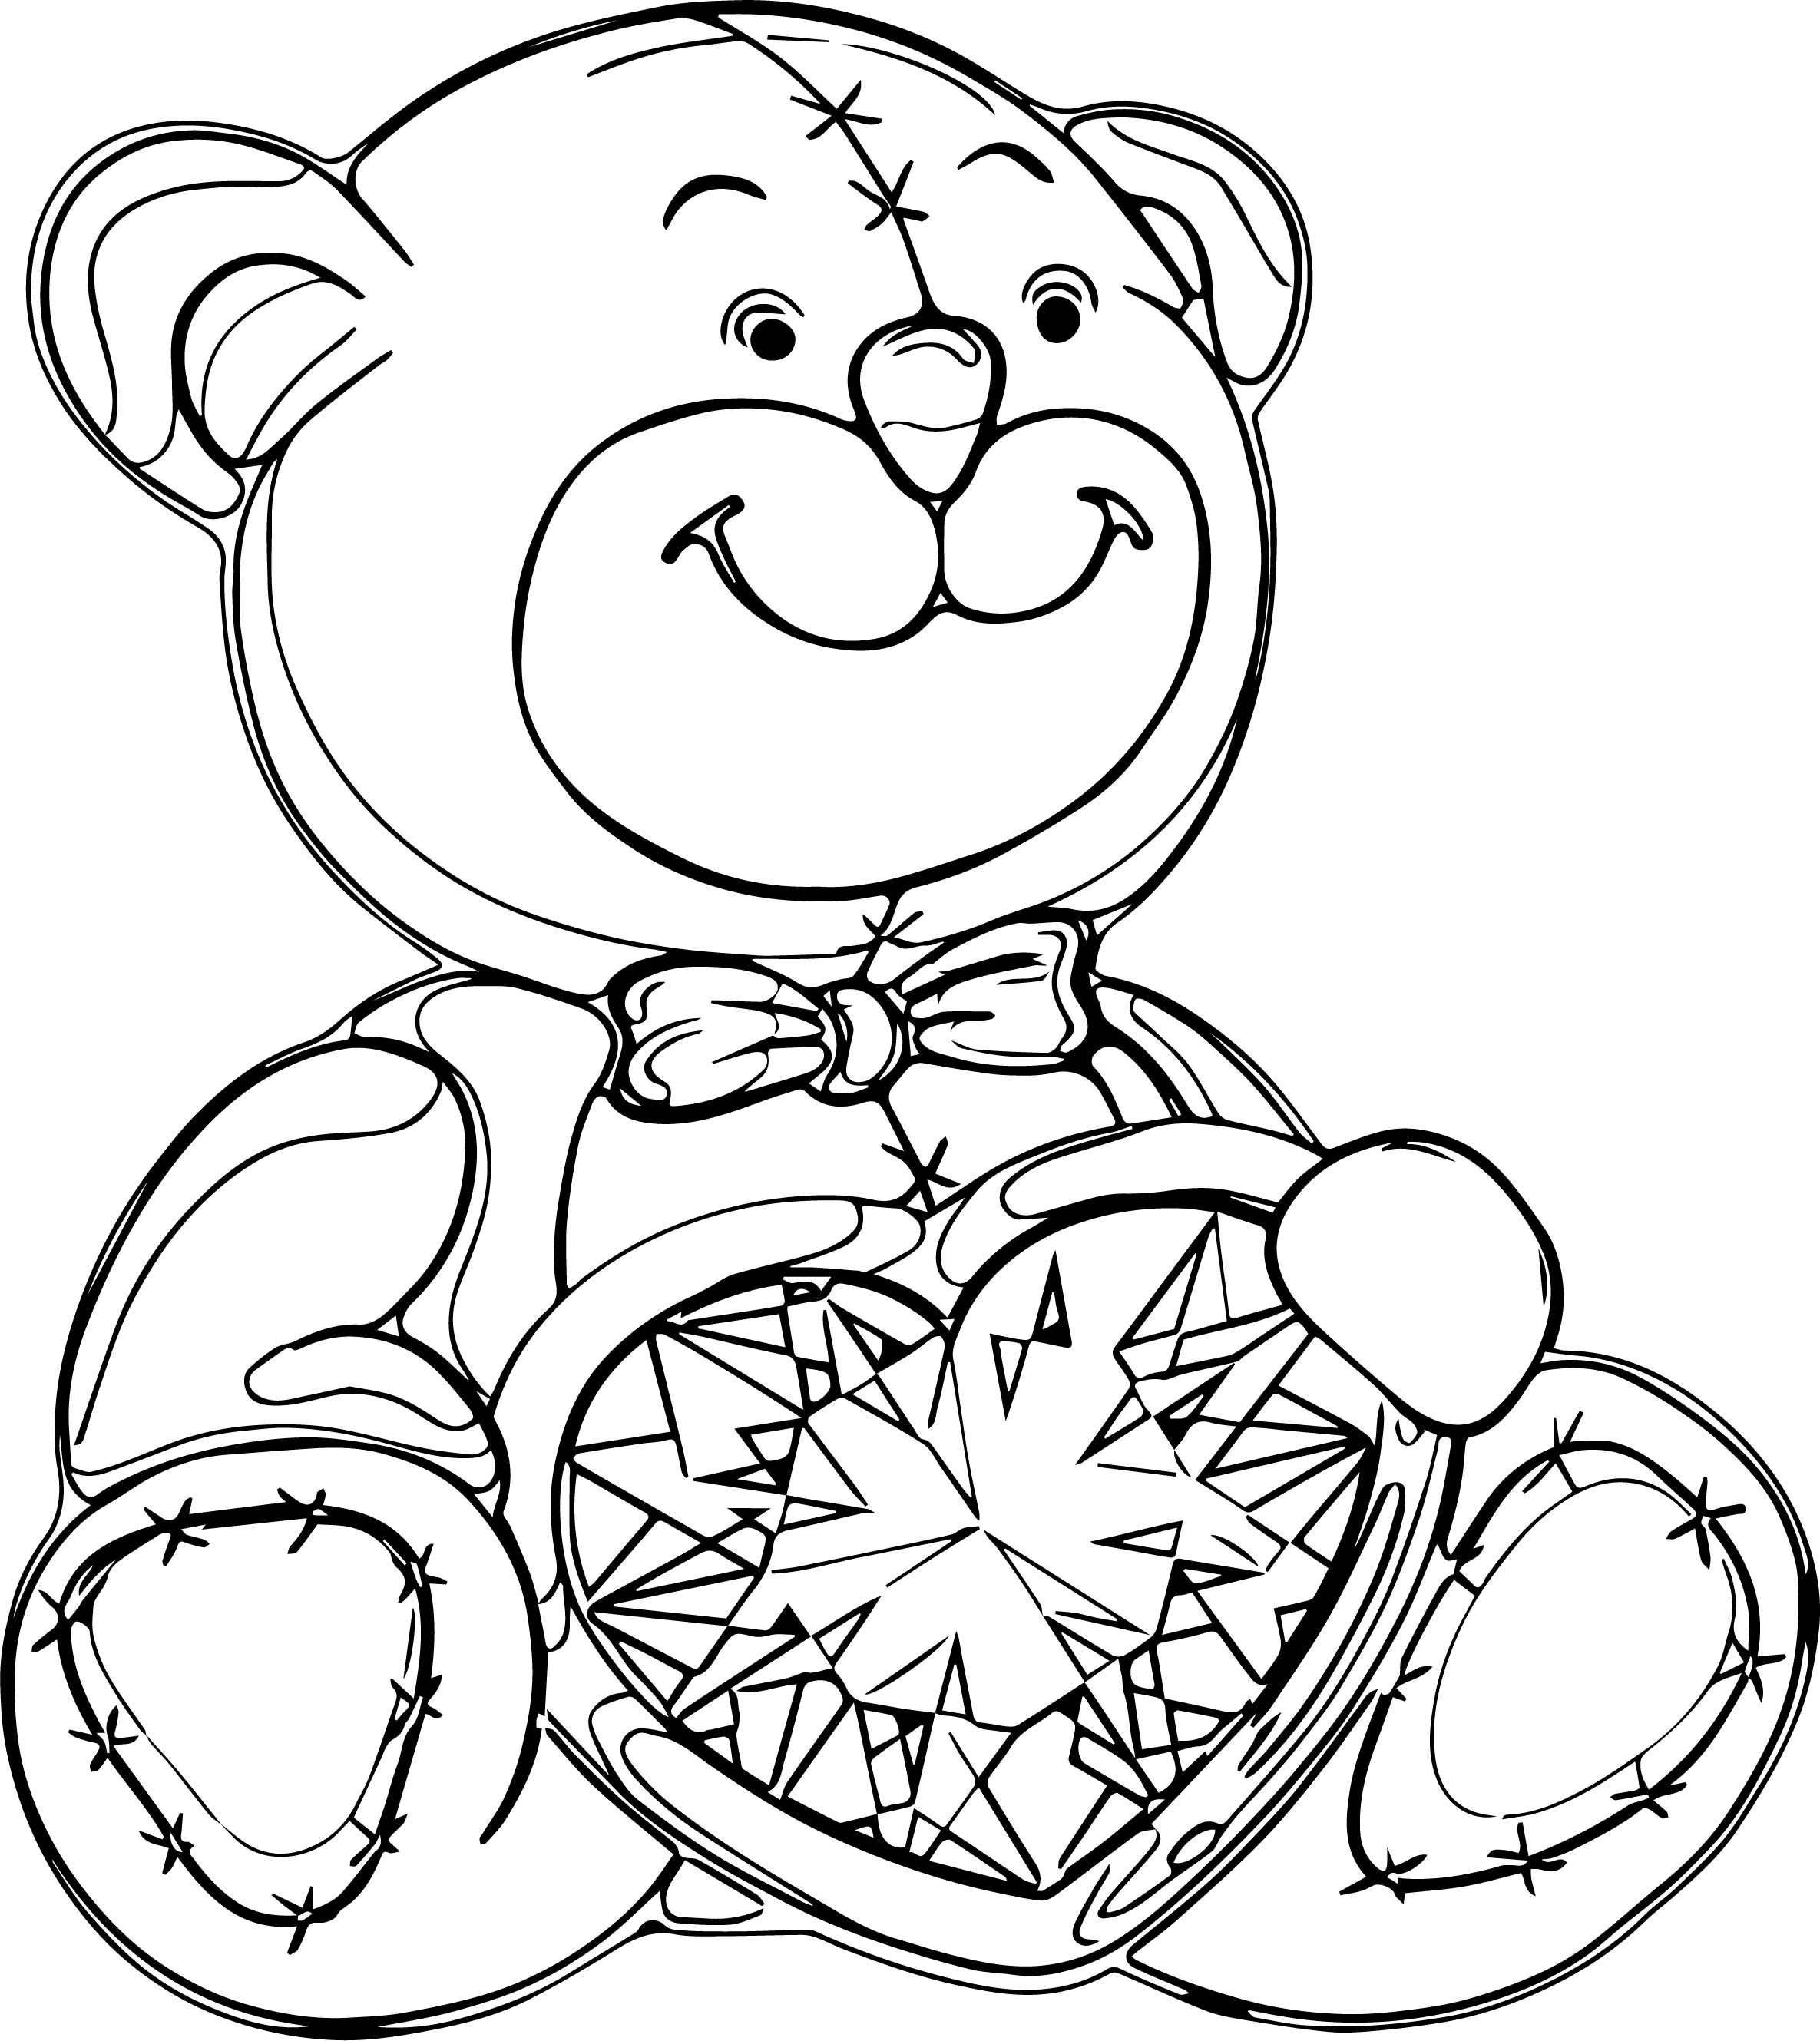 Many Bear Coloring Page